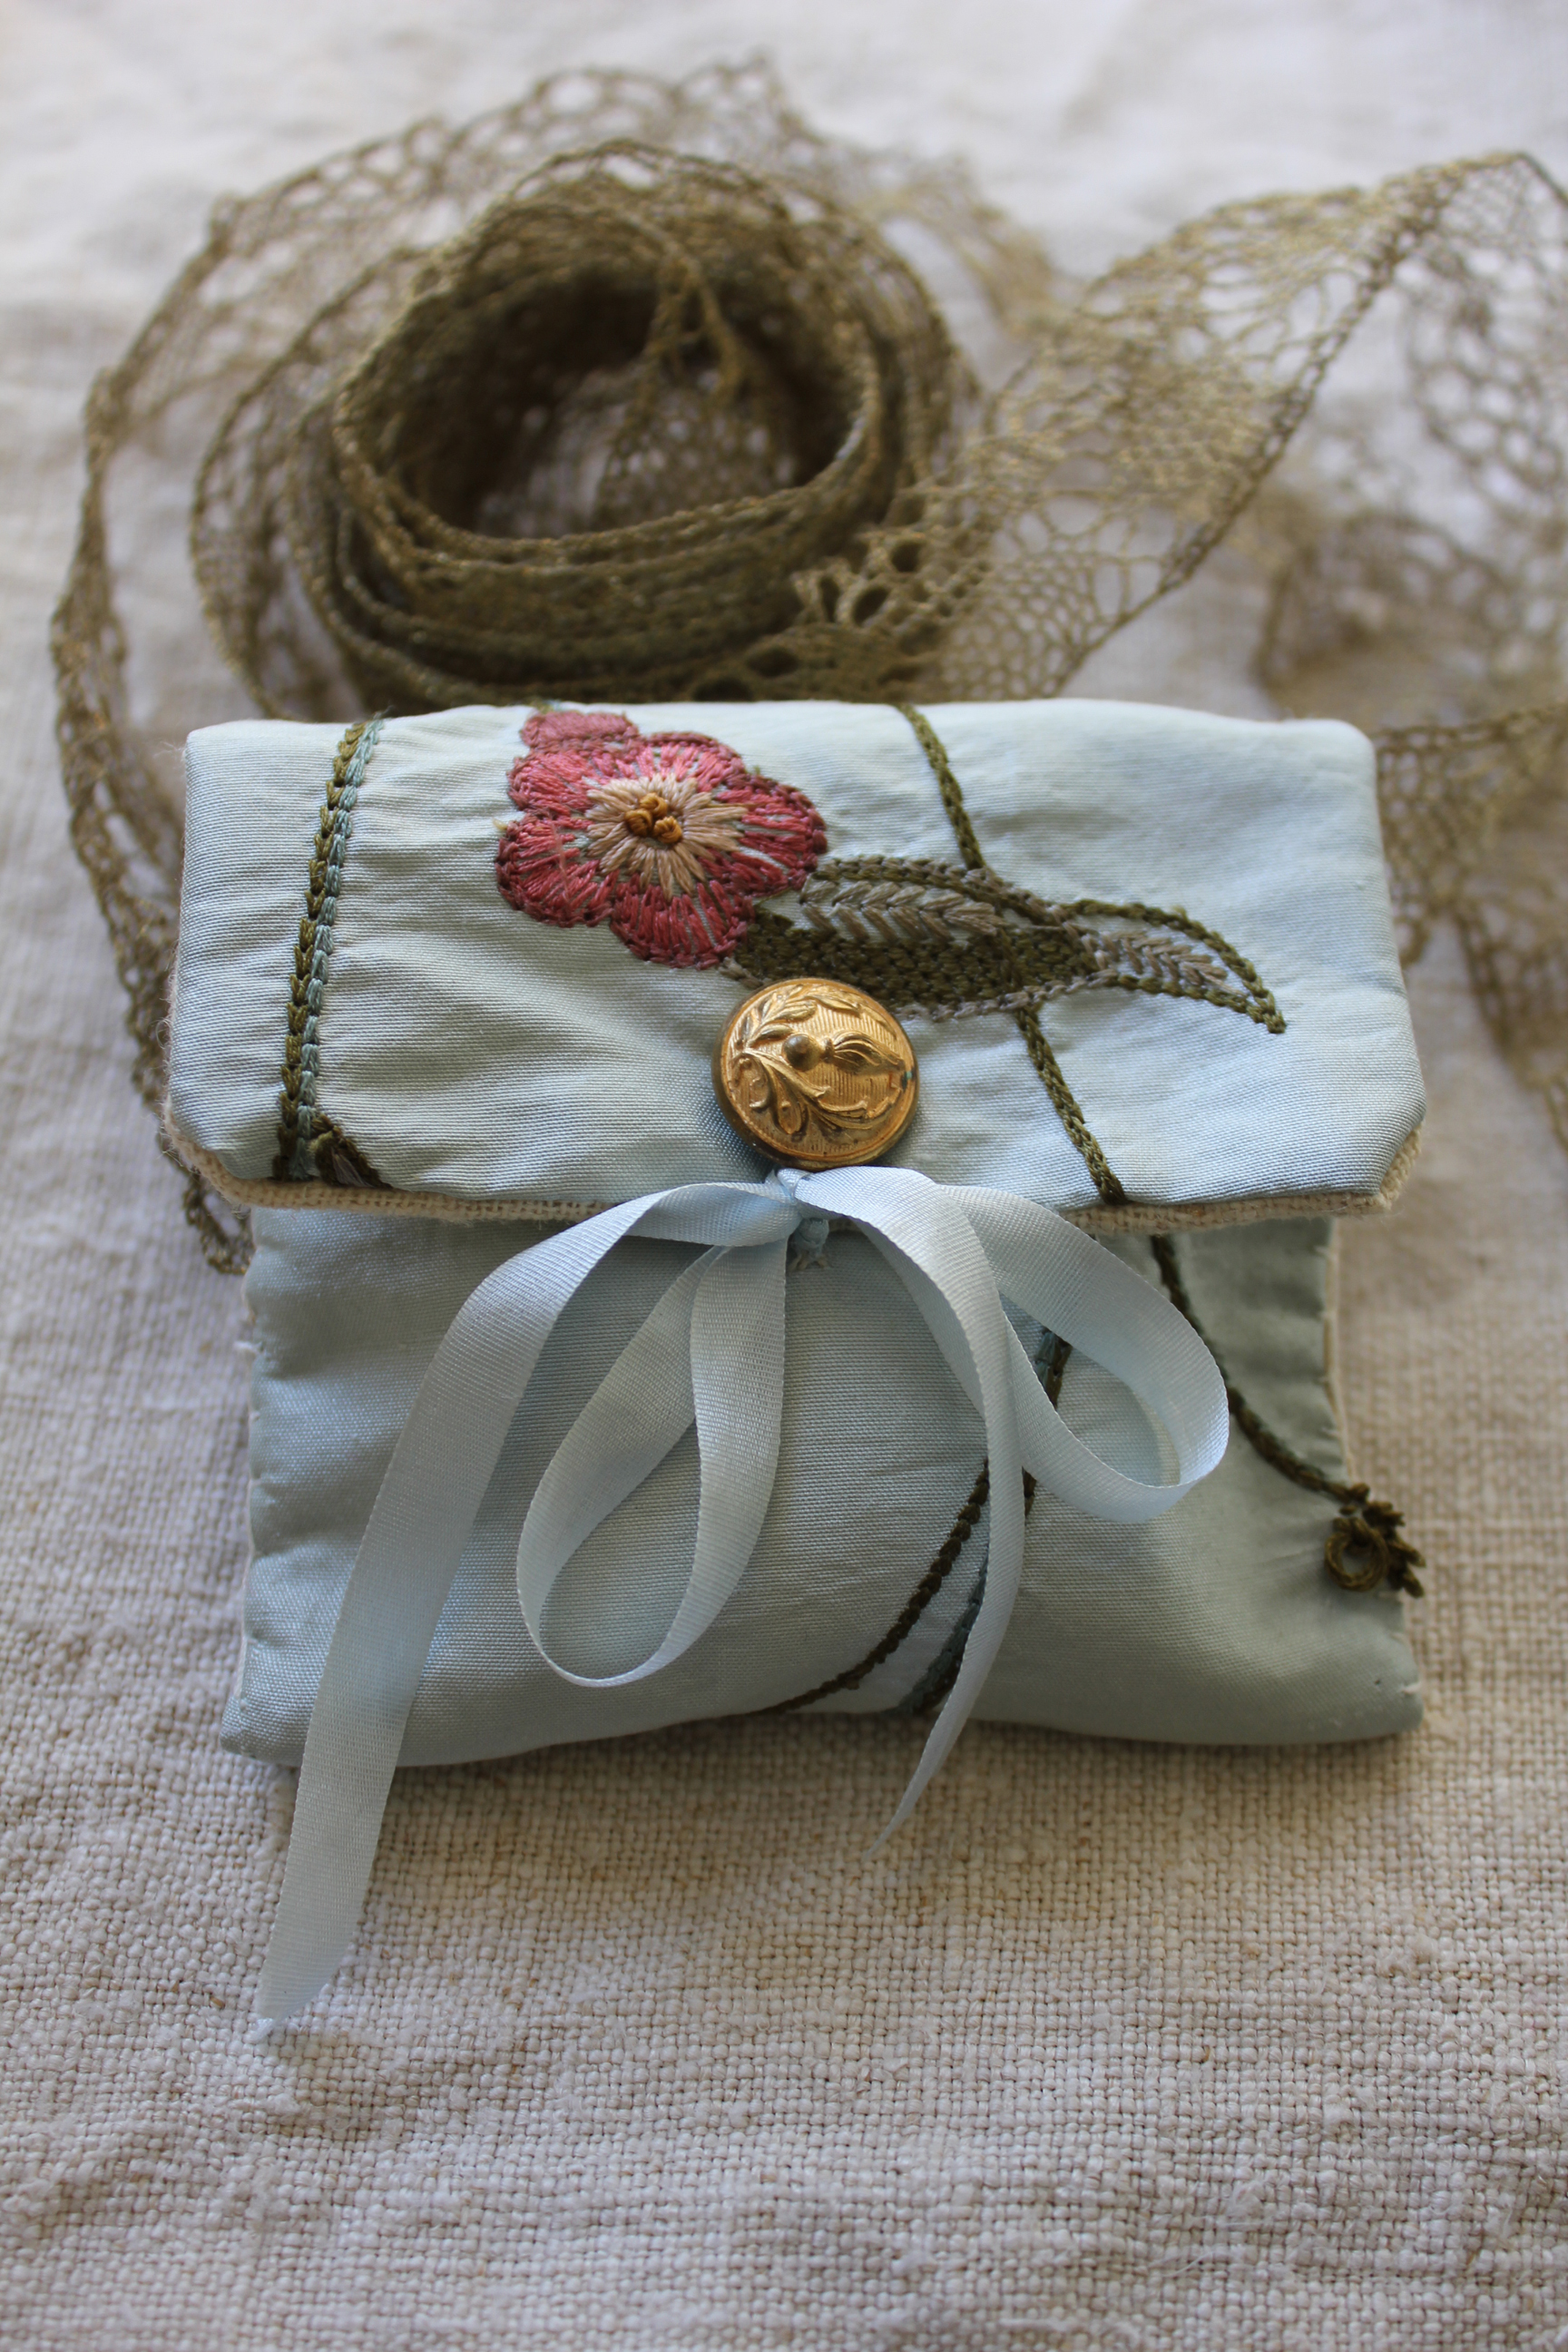 Sewing Project Fabric Basket Tutorial: Small Sewing Projects Trouvais